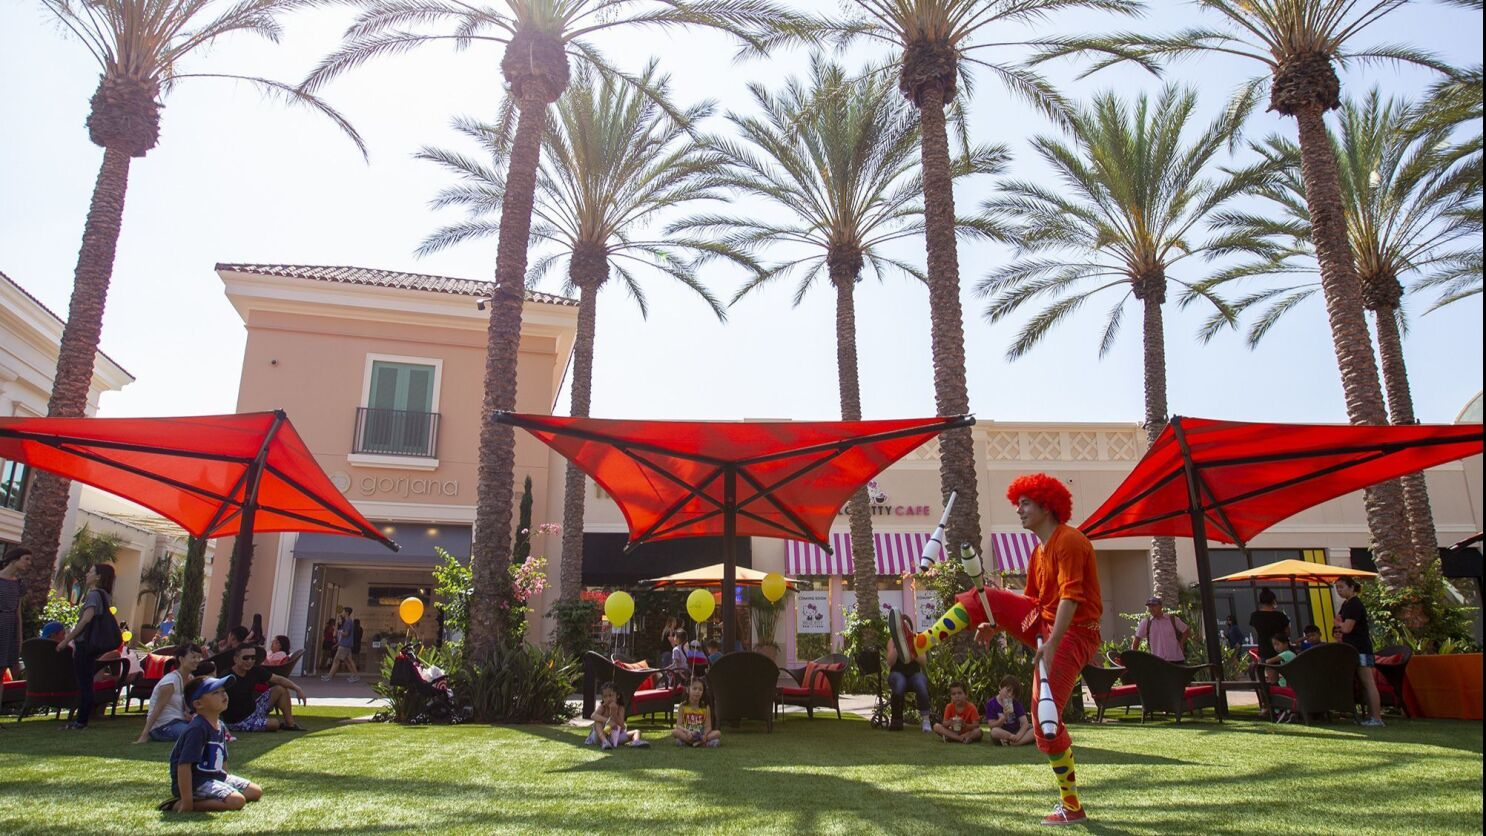 200 Million Makeover Brings New Shops Open Spaces To Irvine Spectrum Los Angeles Times